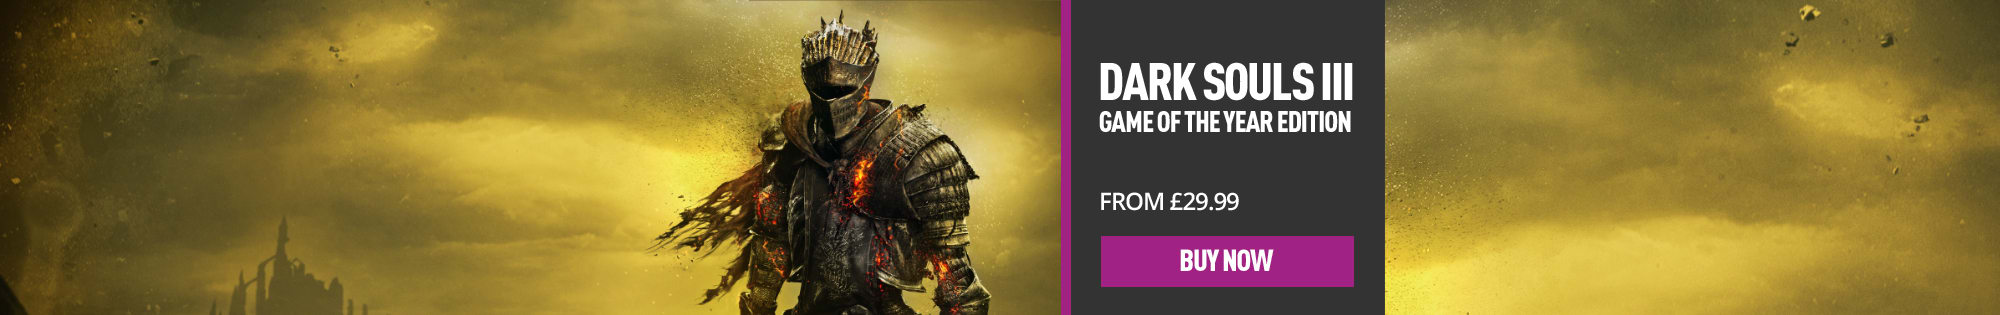 Dark Souls 3 Game Of the Year Edition for PlayStation 4, Xbox One and PC